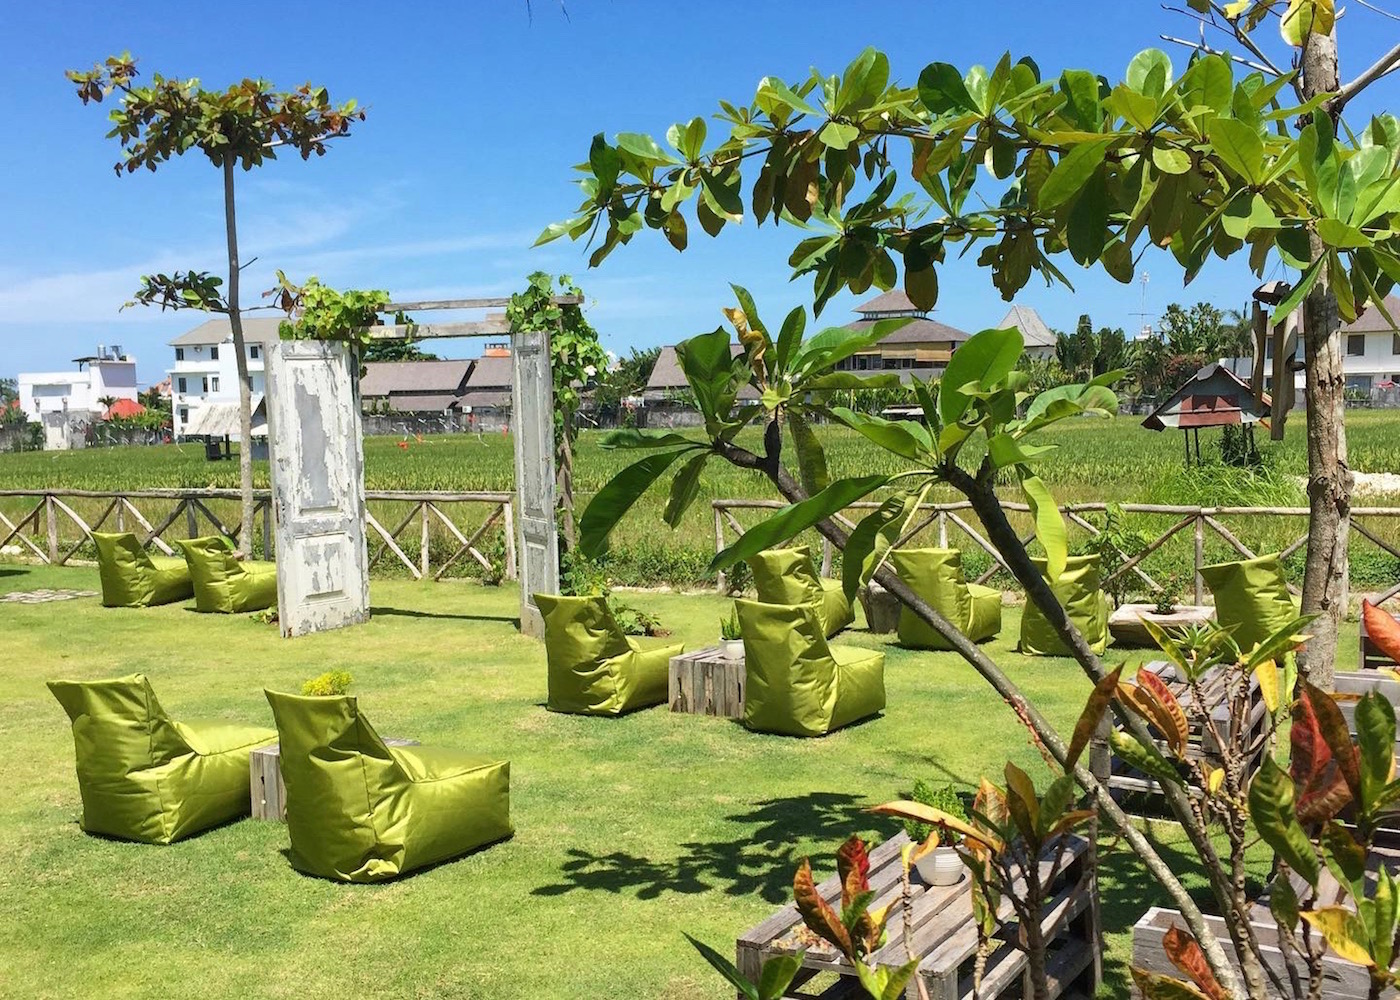 Garden at The Greenhouse - a family-friendly restaurant in Canggu, Bali, Indonesia